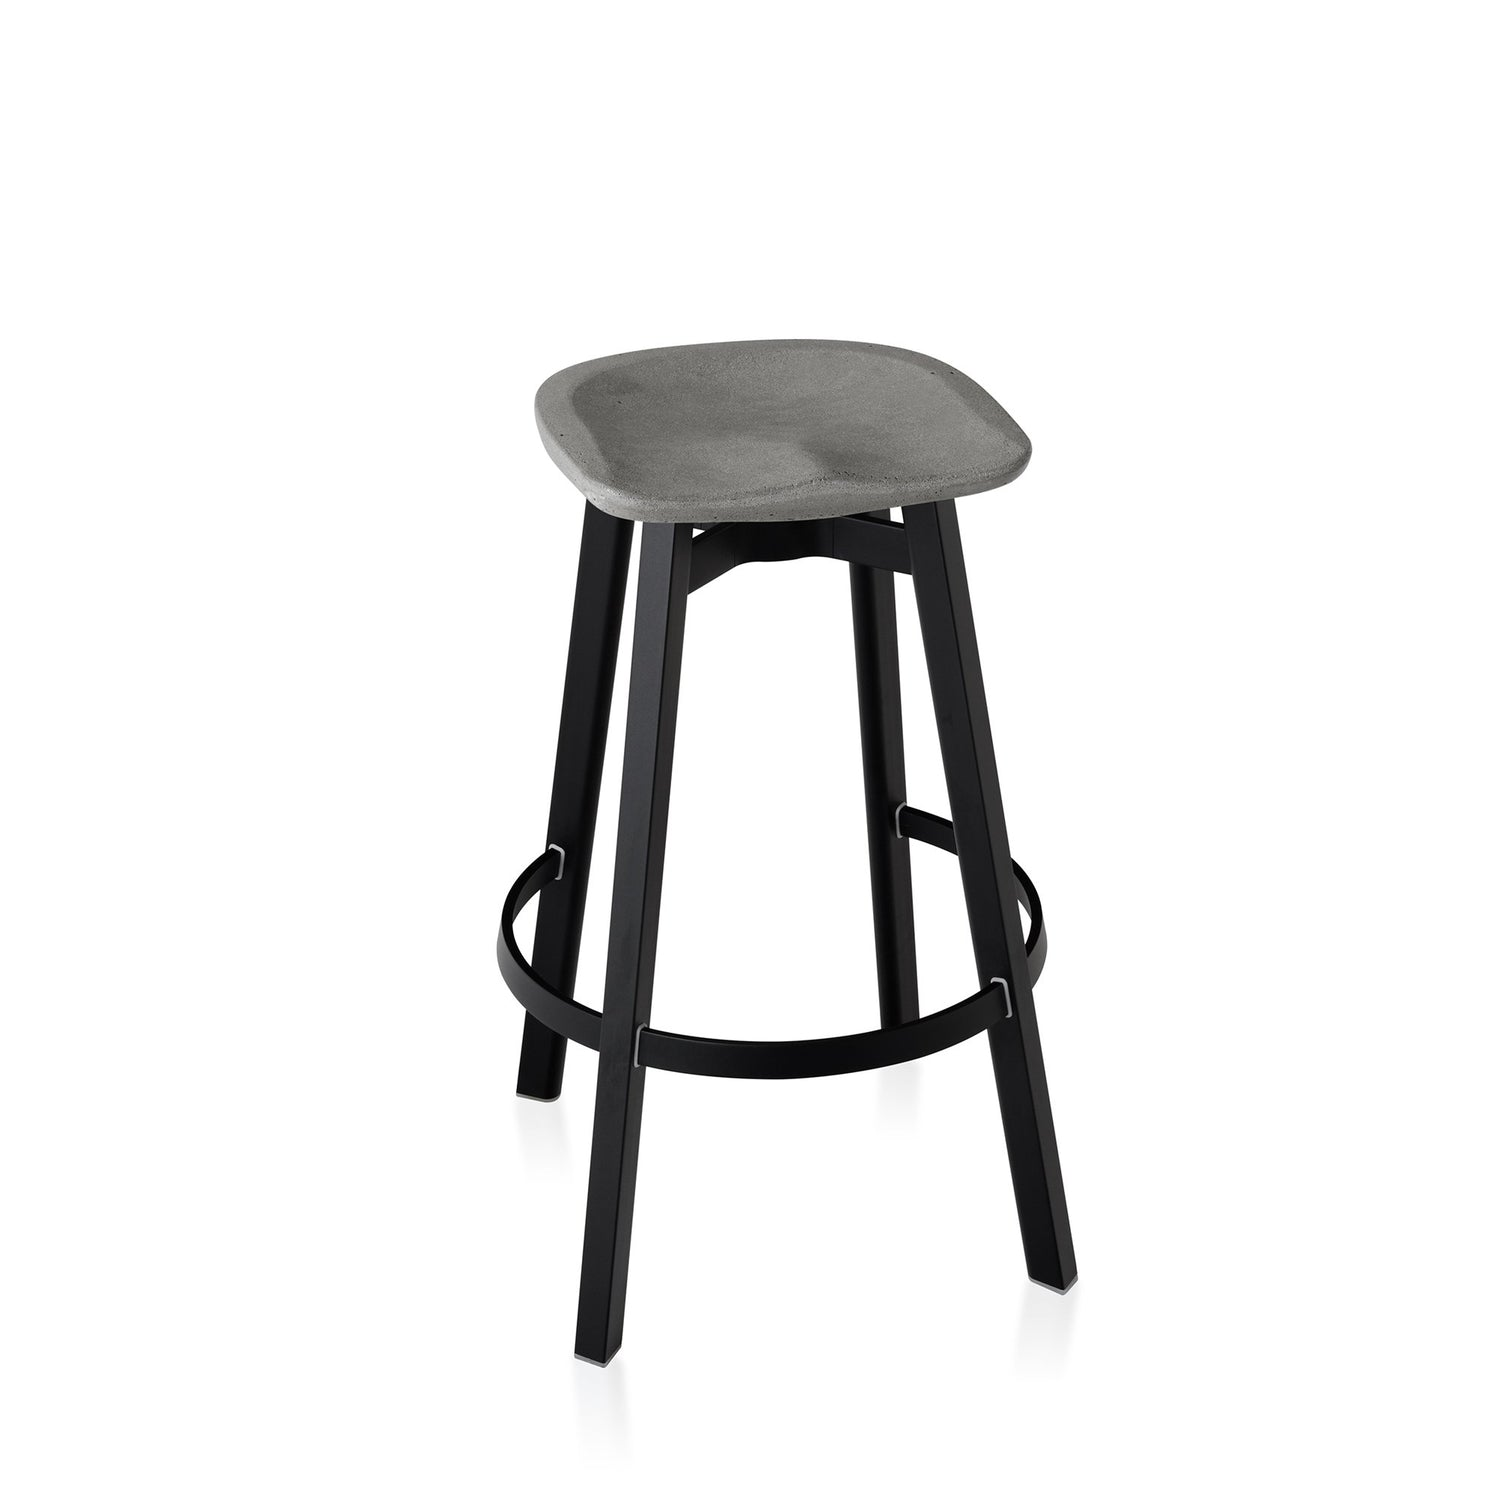 Emeco Su Bar Stool - Eco Concrete Furniture Emeco Eco Concrete Black Anodized